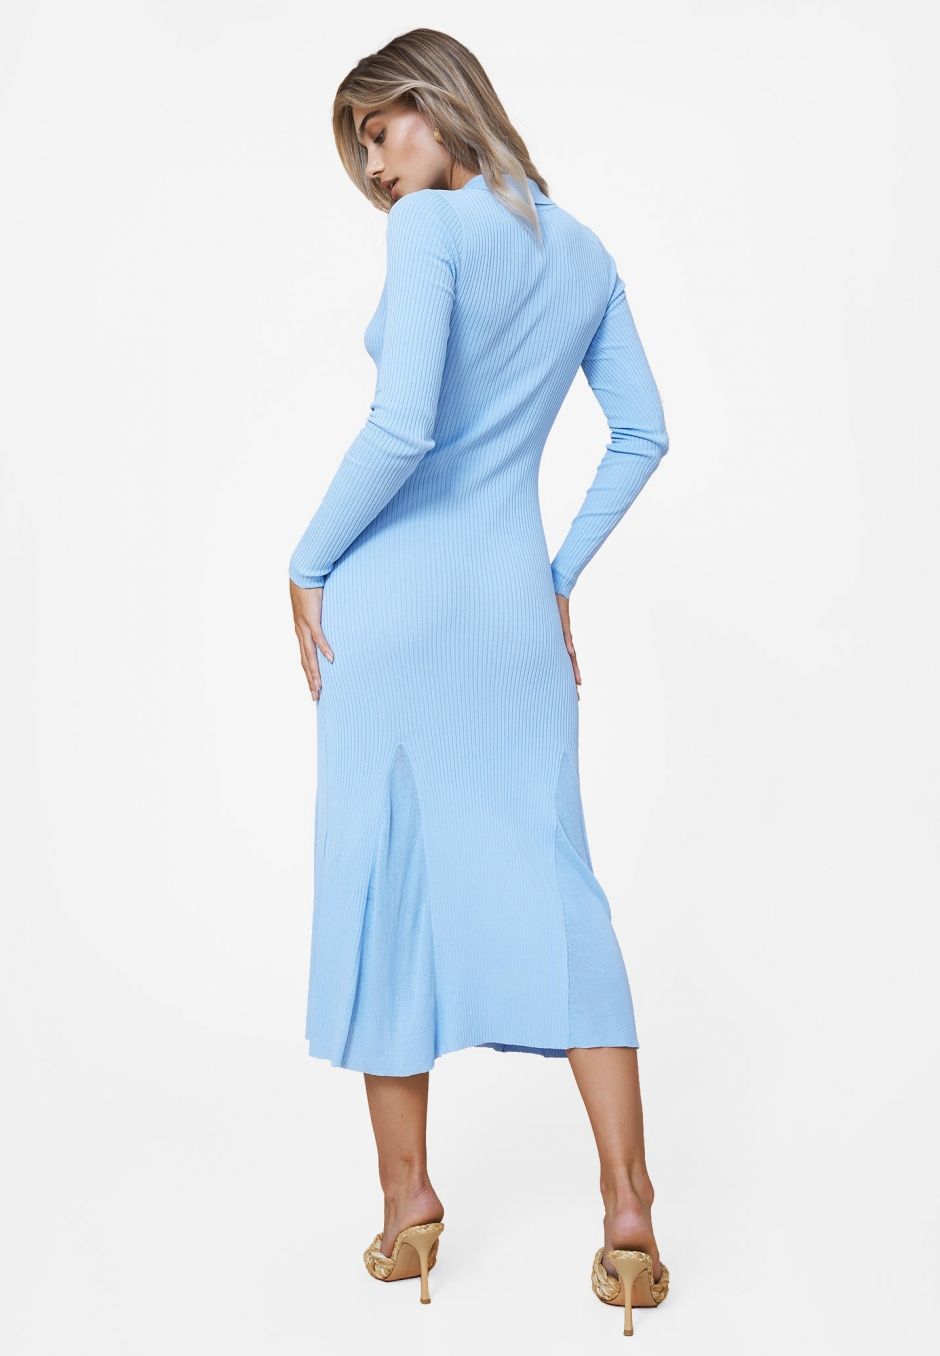 Adoore Collar Knitted Dress Blue